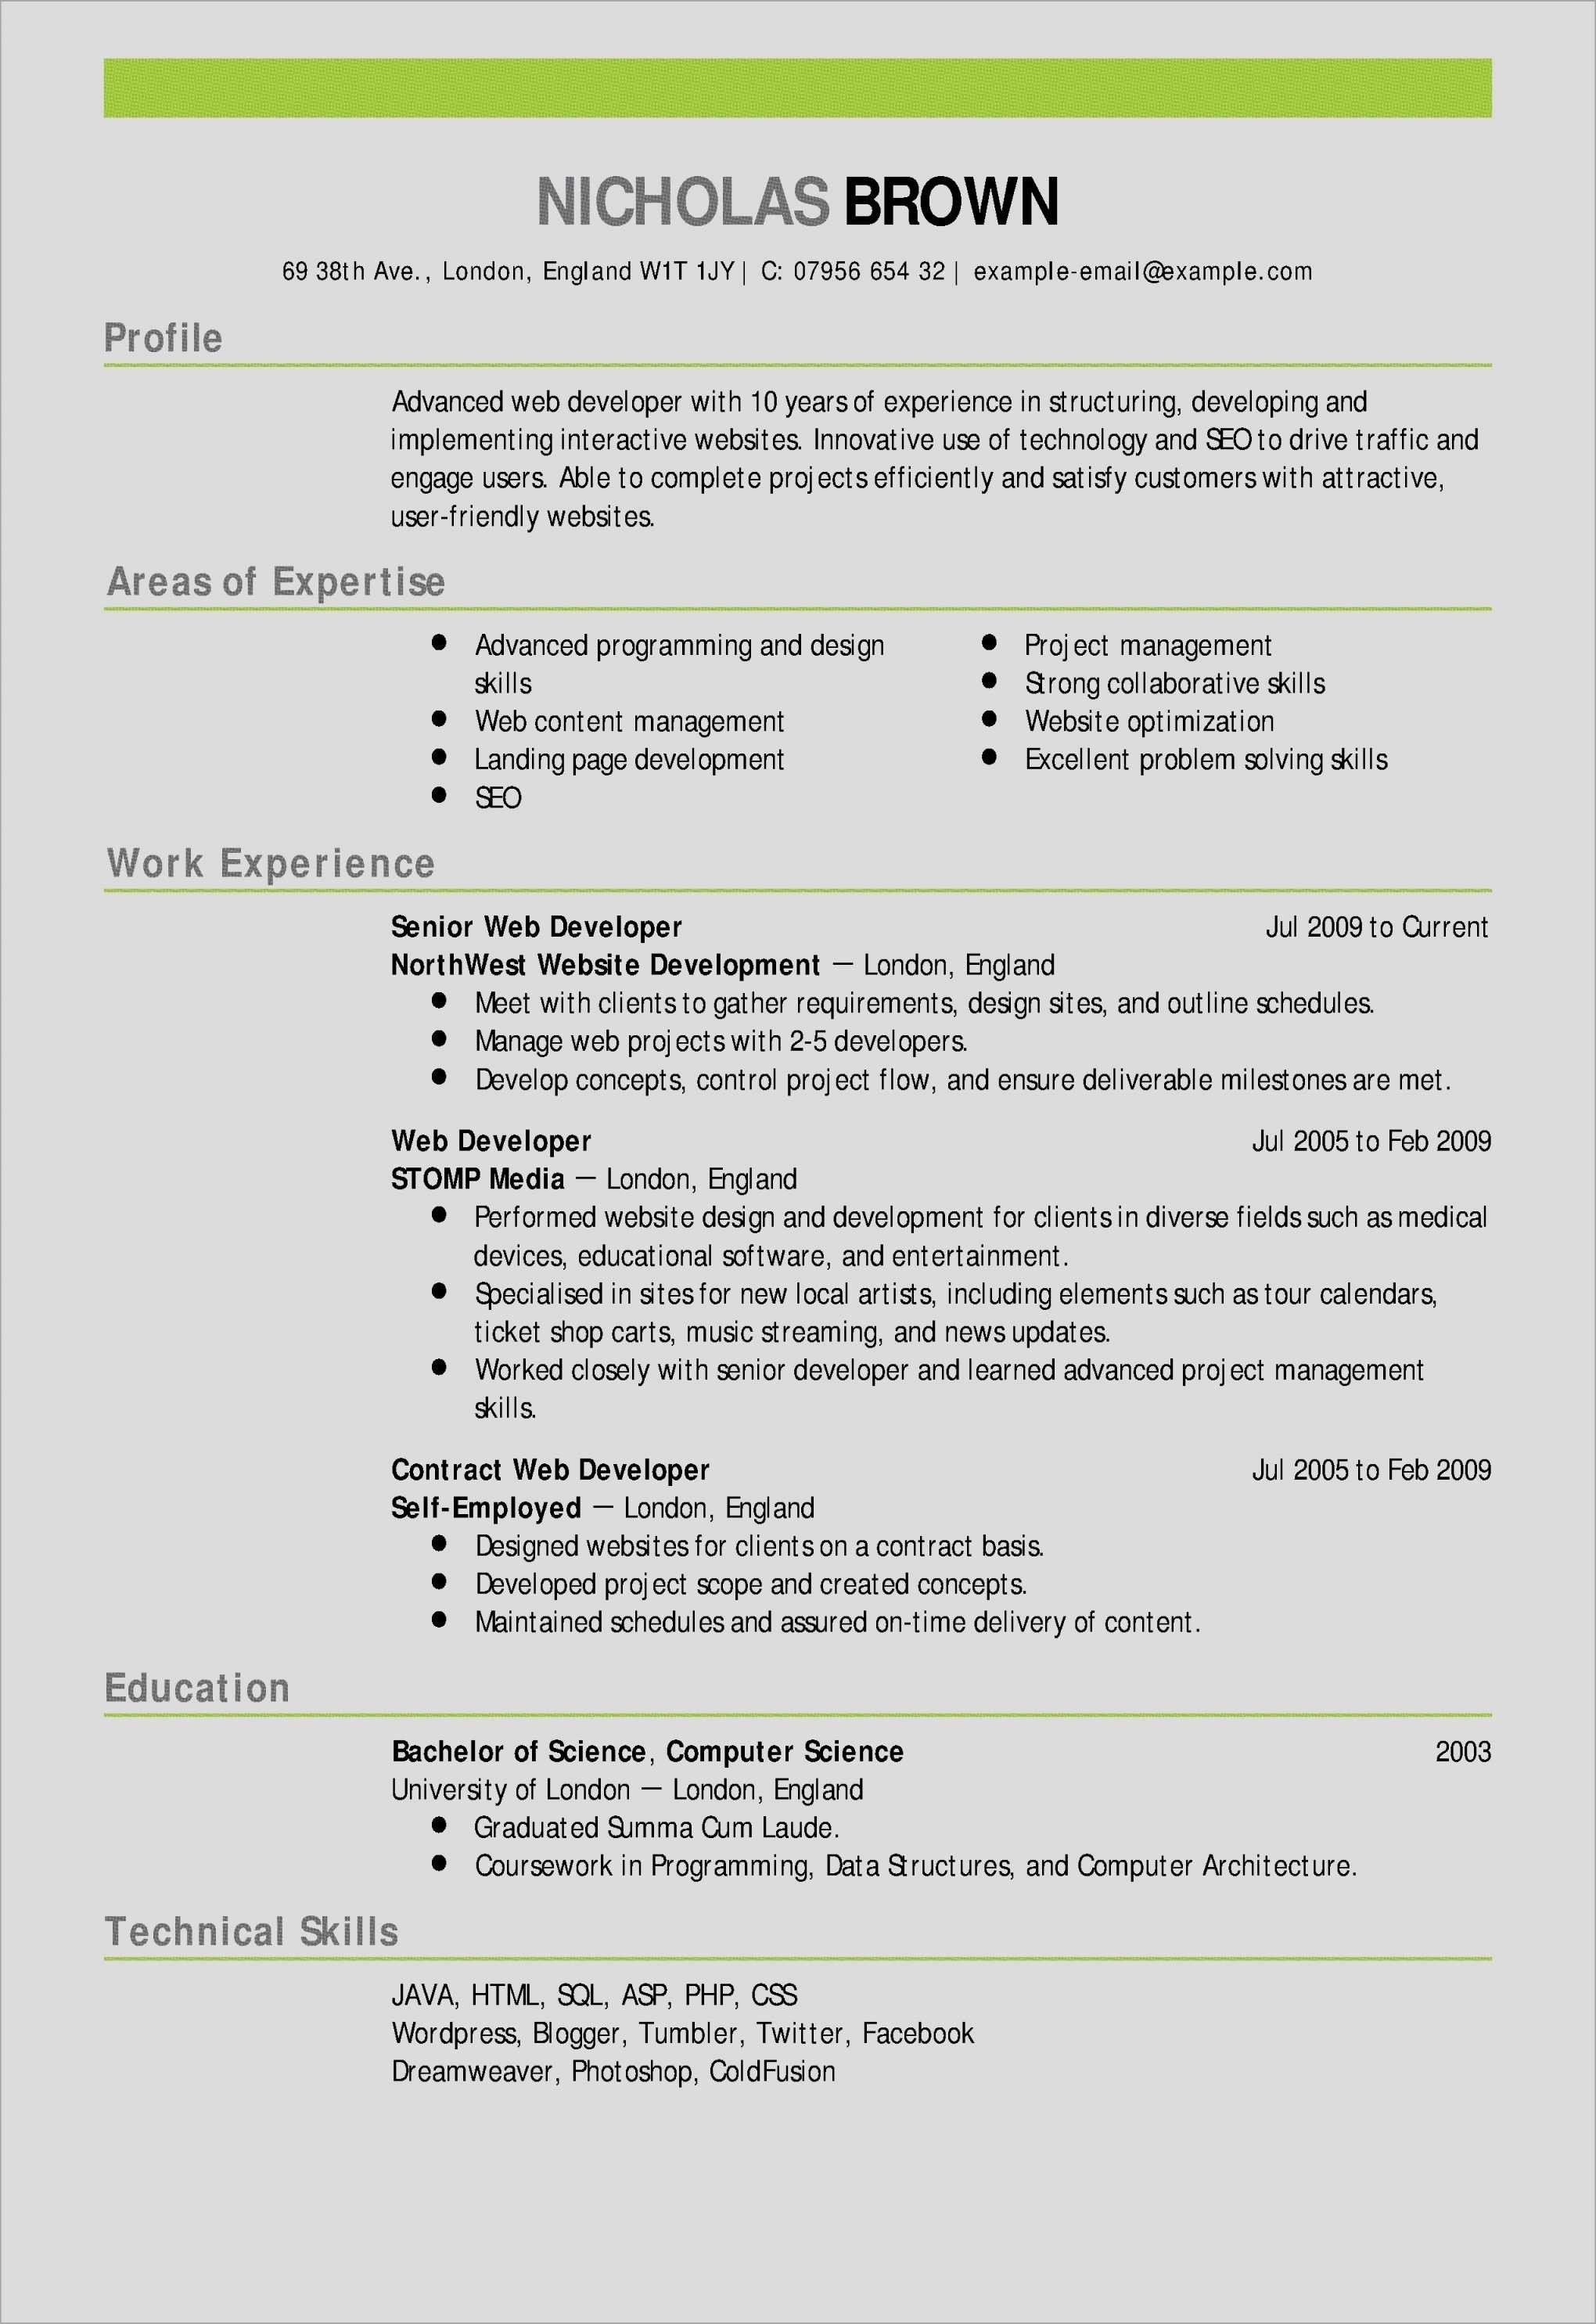 Outline For A Resume Lovely Resume Template Libreoffice Resume Word New Awesome Examples Teacher Resume Examples Teacher Resume Best Resume Template